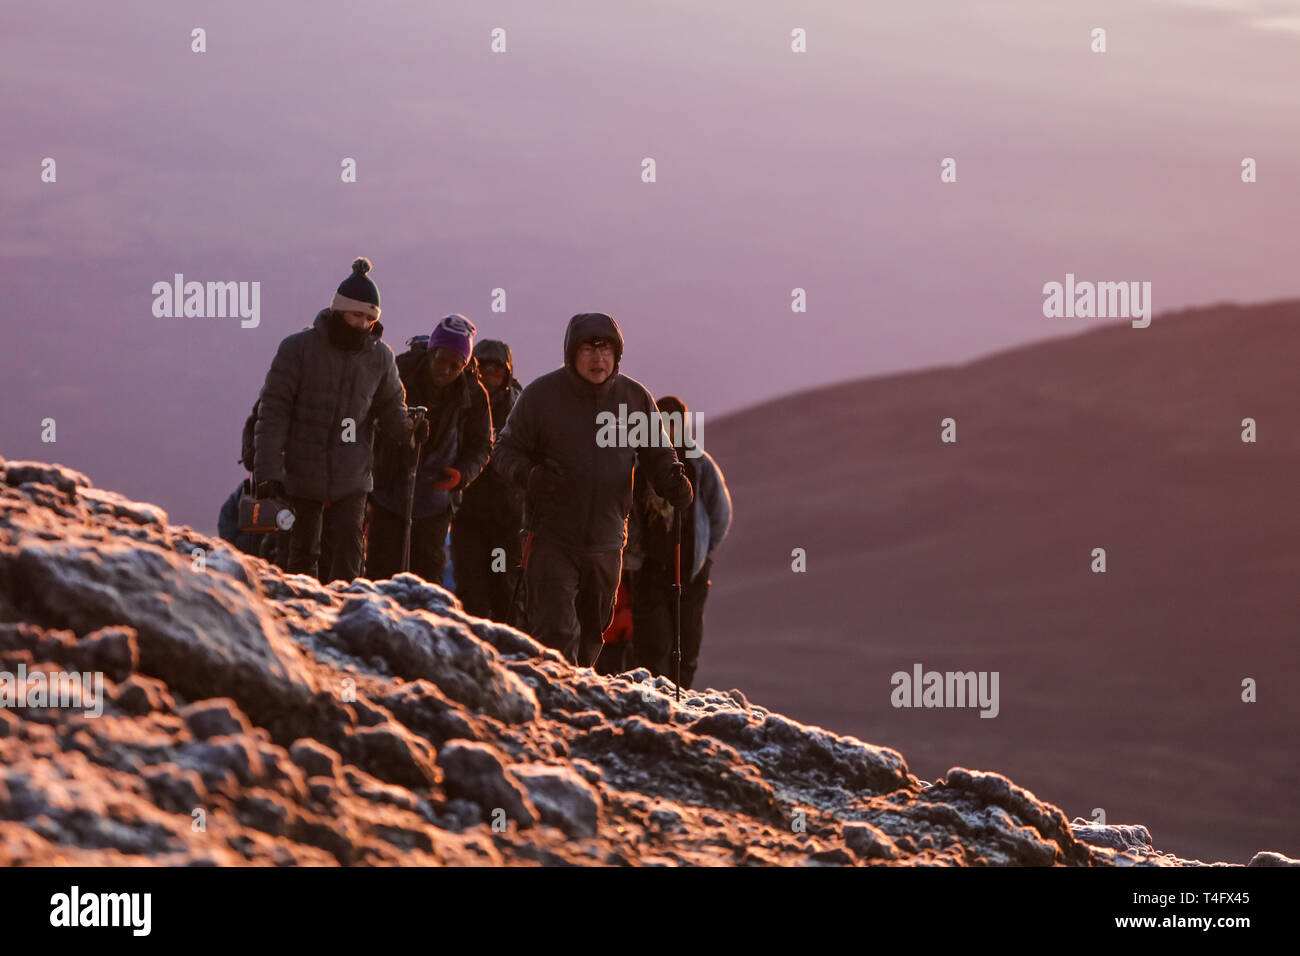 Strong men go through the rocks in Africa. Meet the sunrise on the mountain, cold wind and white snow. Brave and fearless people, extreme sport. View Stock Photo